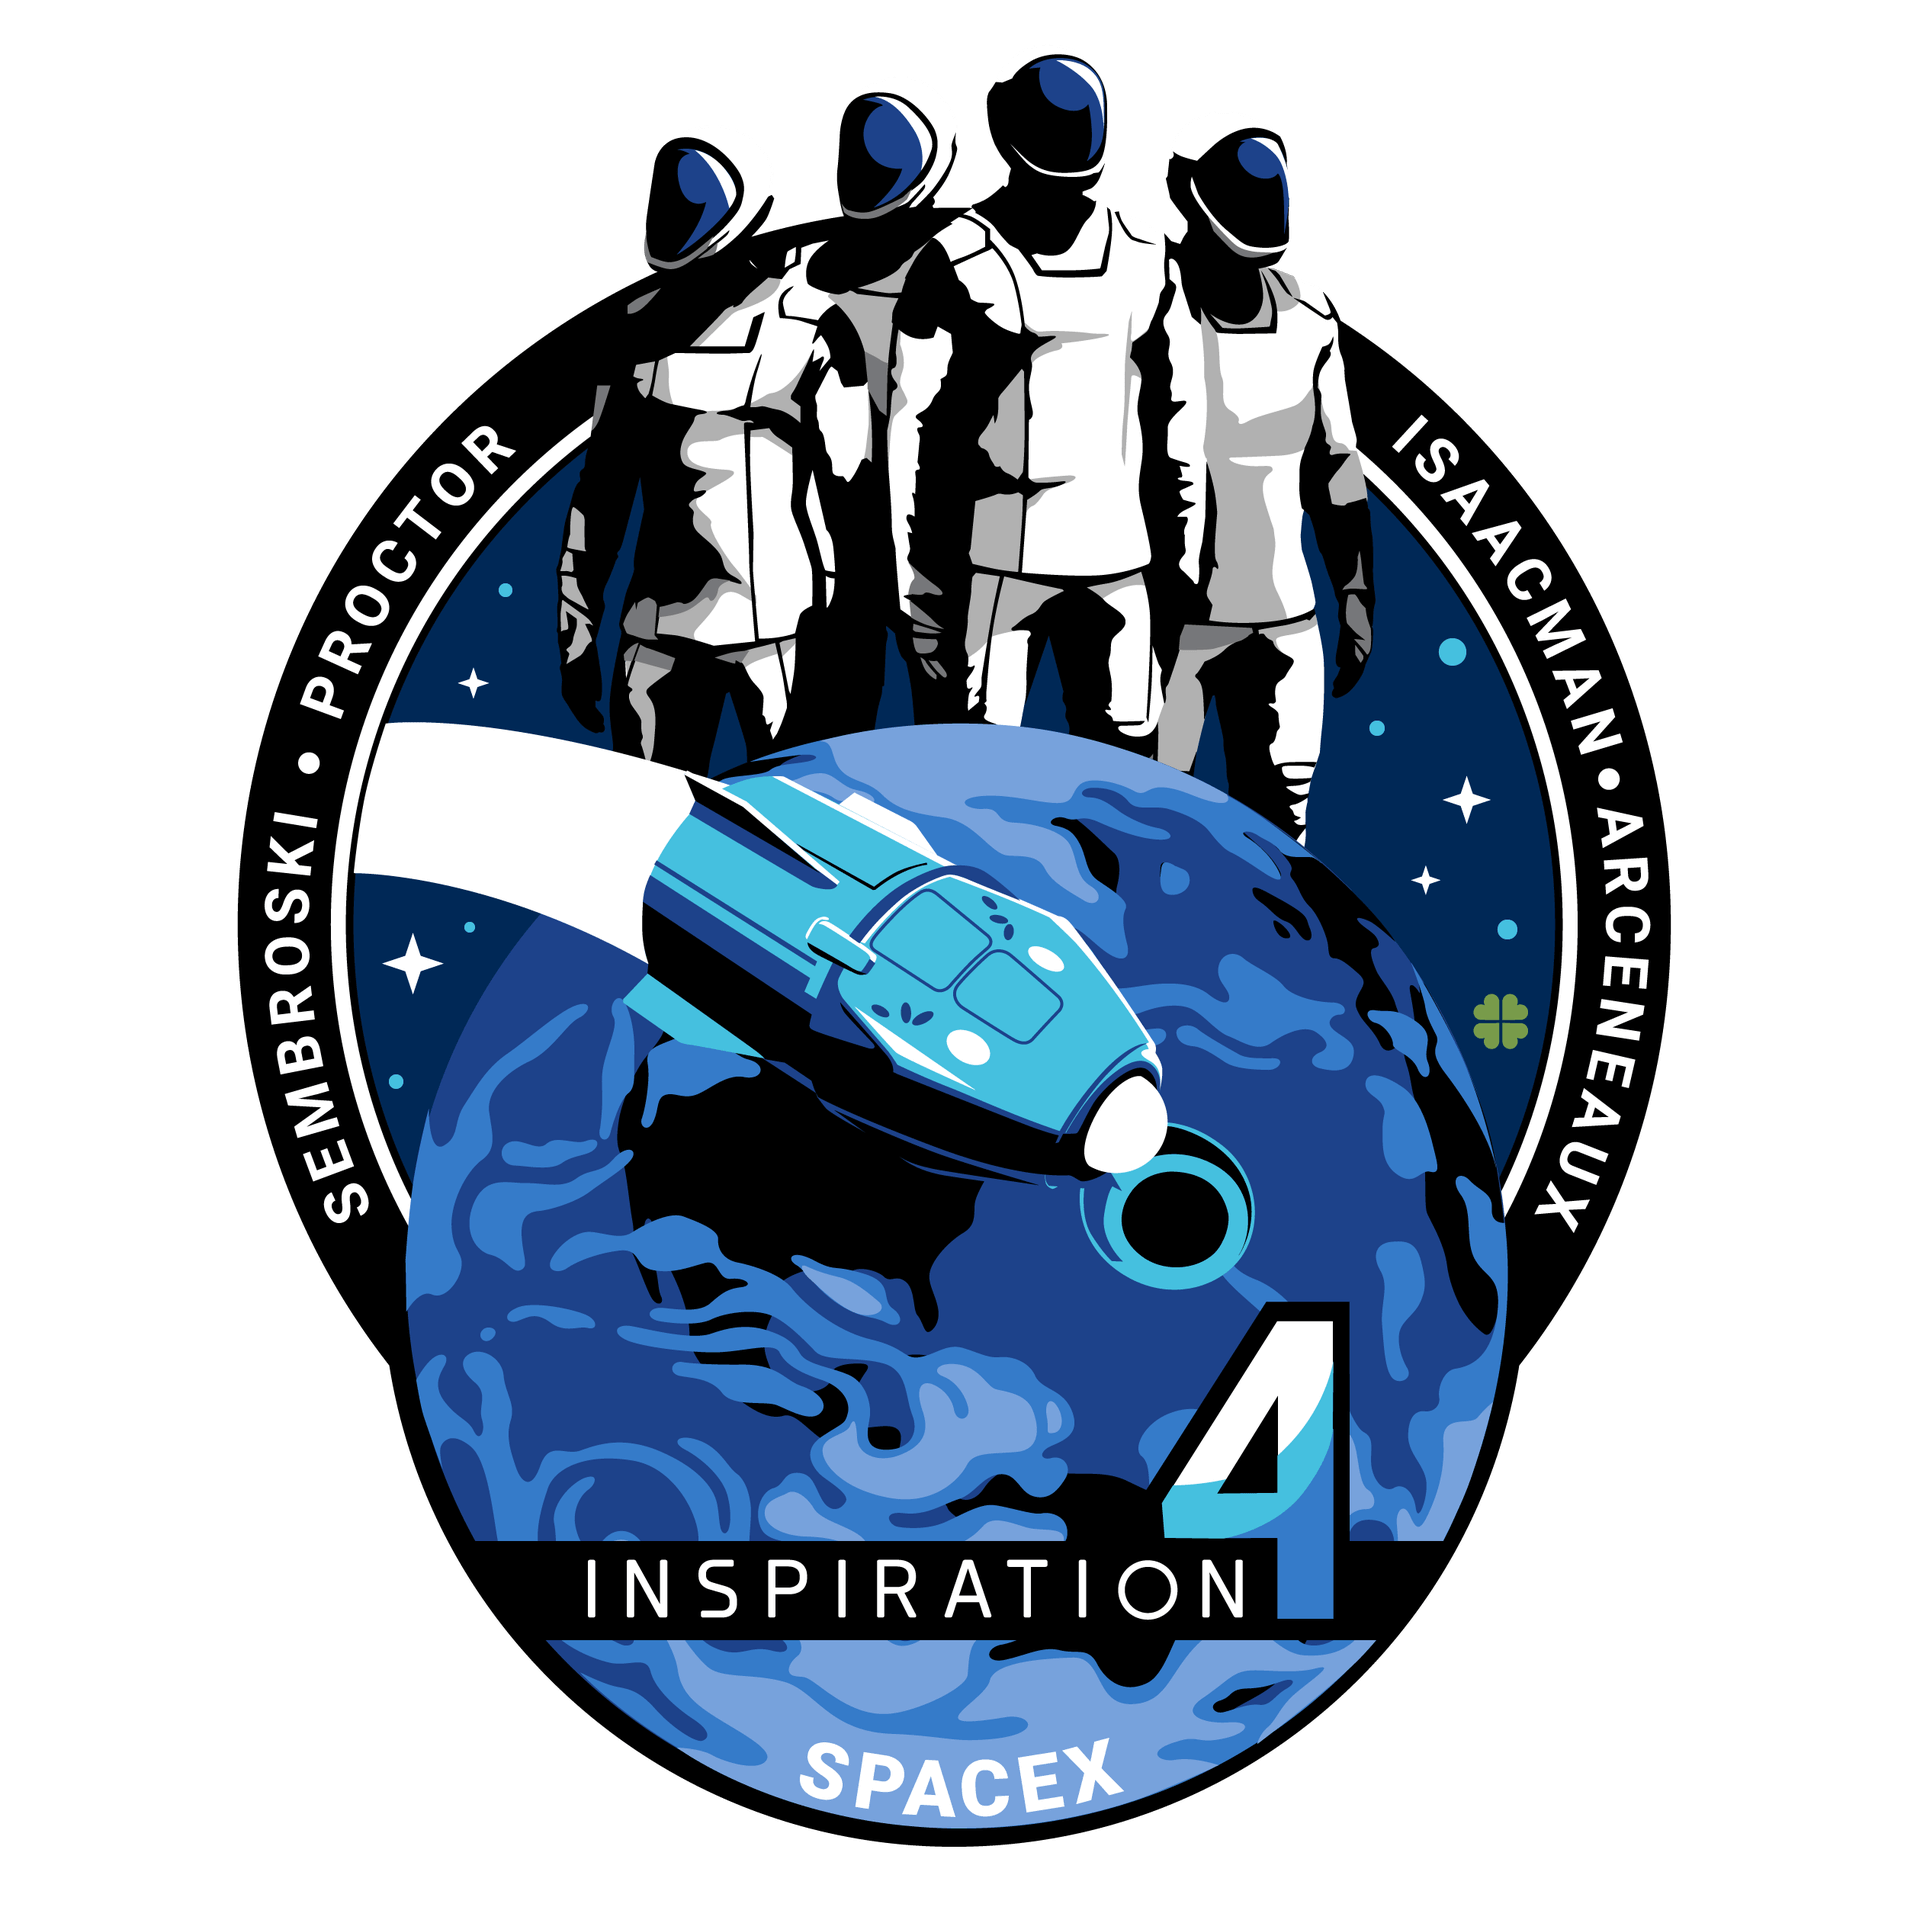 Inspiration4 SpaceX Internal Mission Patch